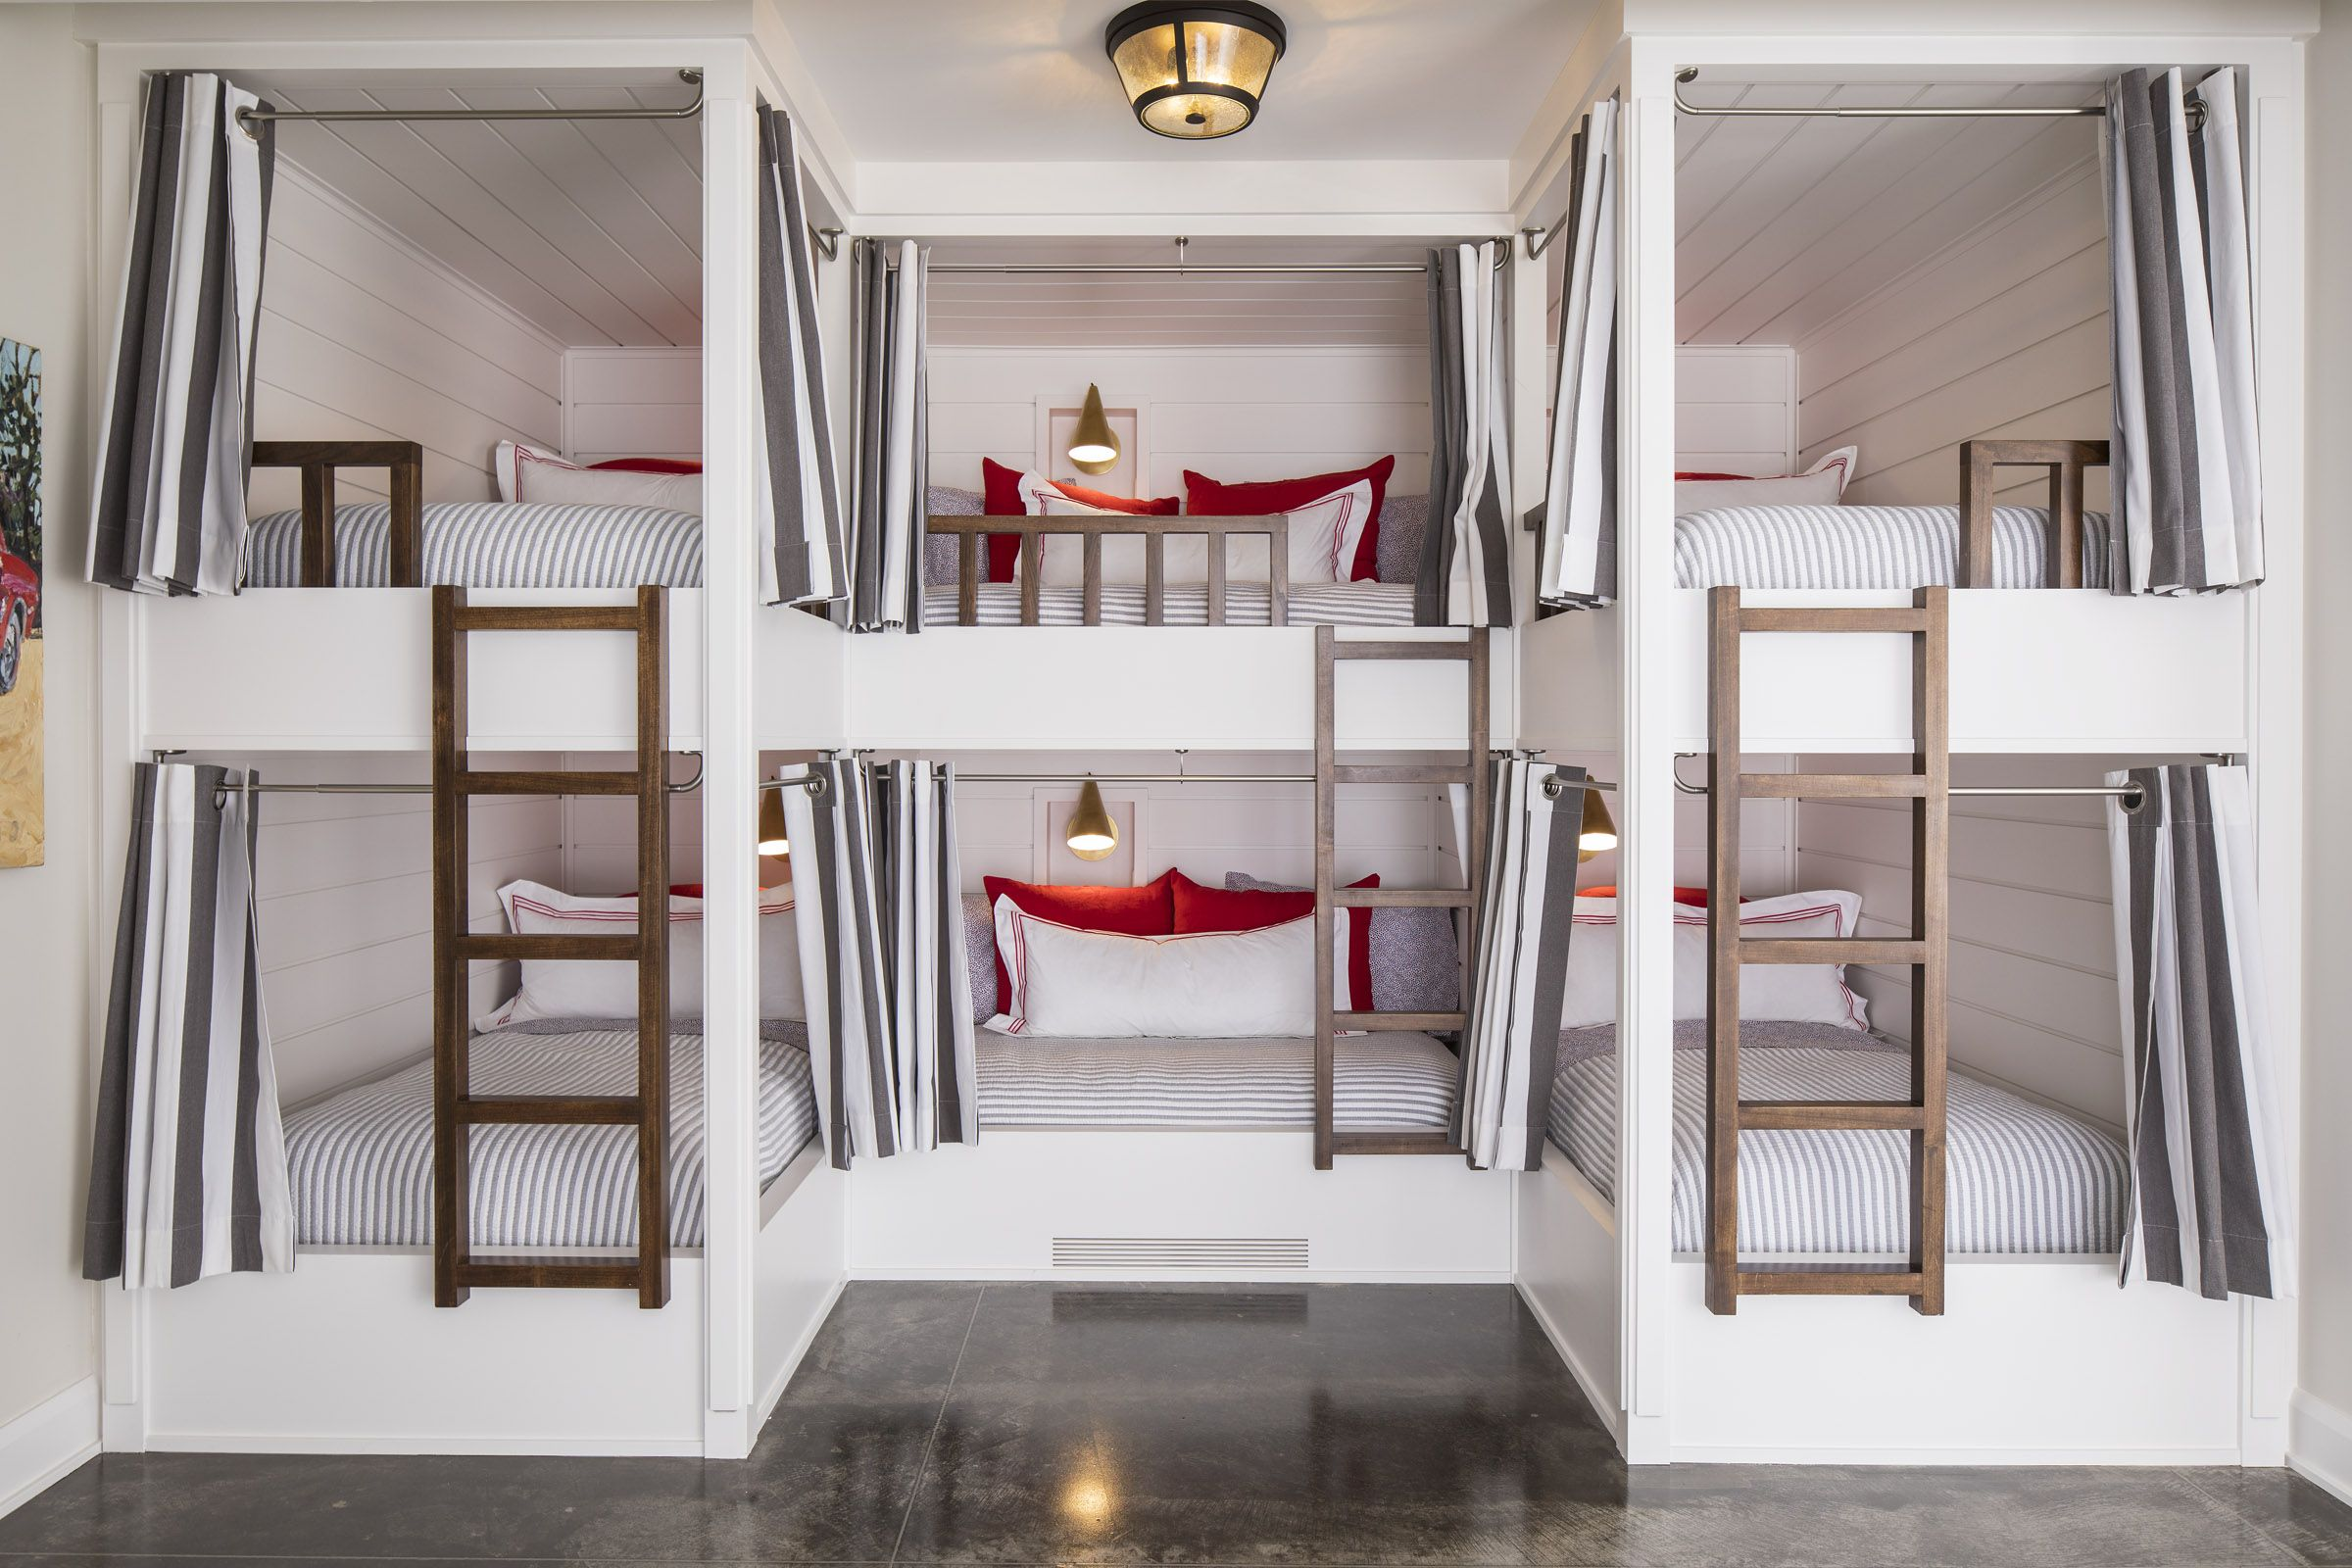 Lake House Bunk Bed Room In 2020 Bunk Bed Rooms Sleepover Room Bunk Rooms